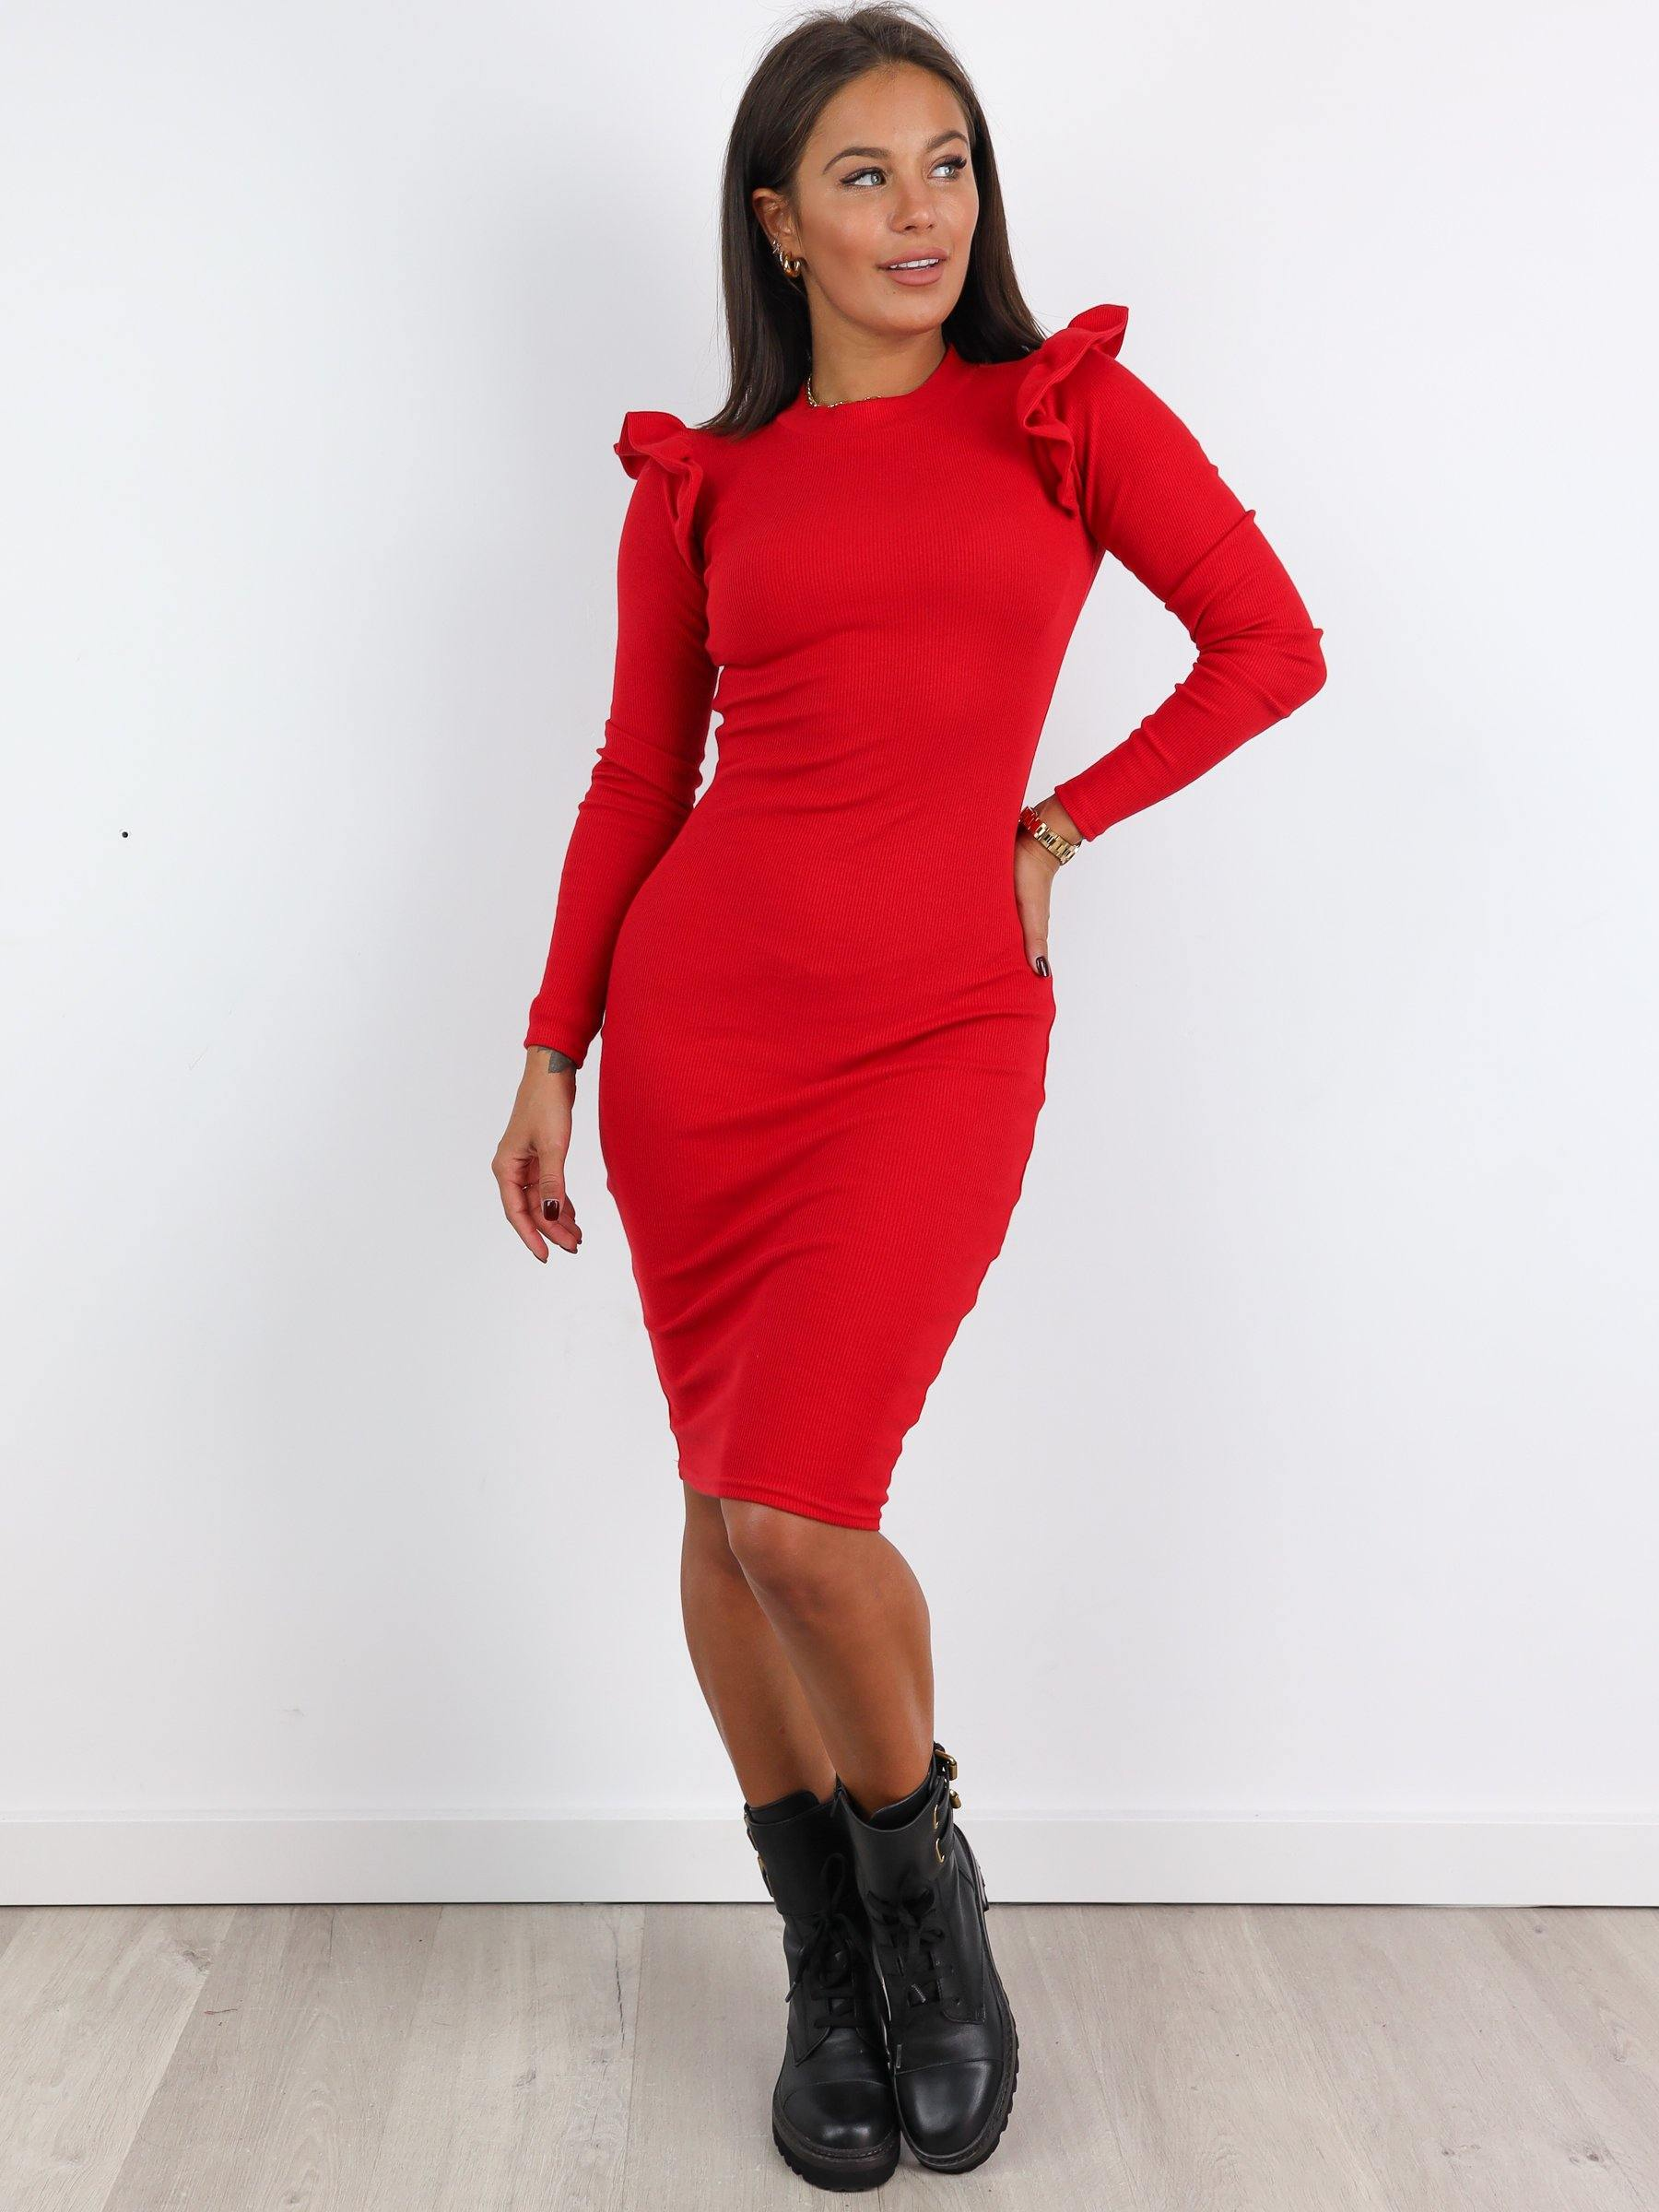 Ribbed Frill Details Bodycon Dress - RED -A255 - Wassyl